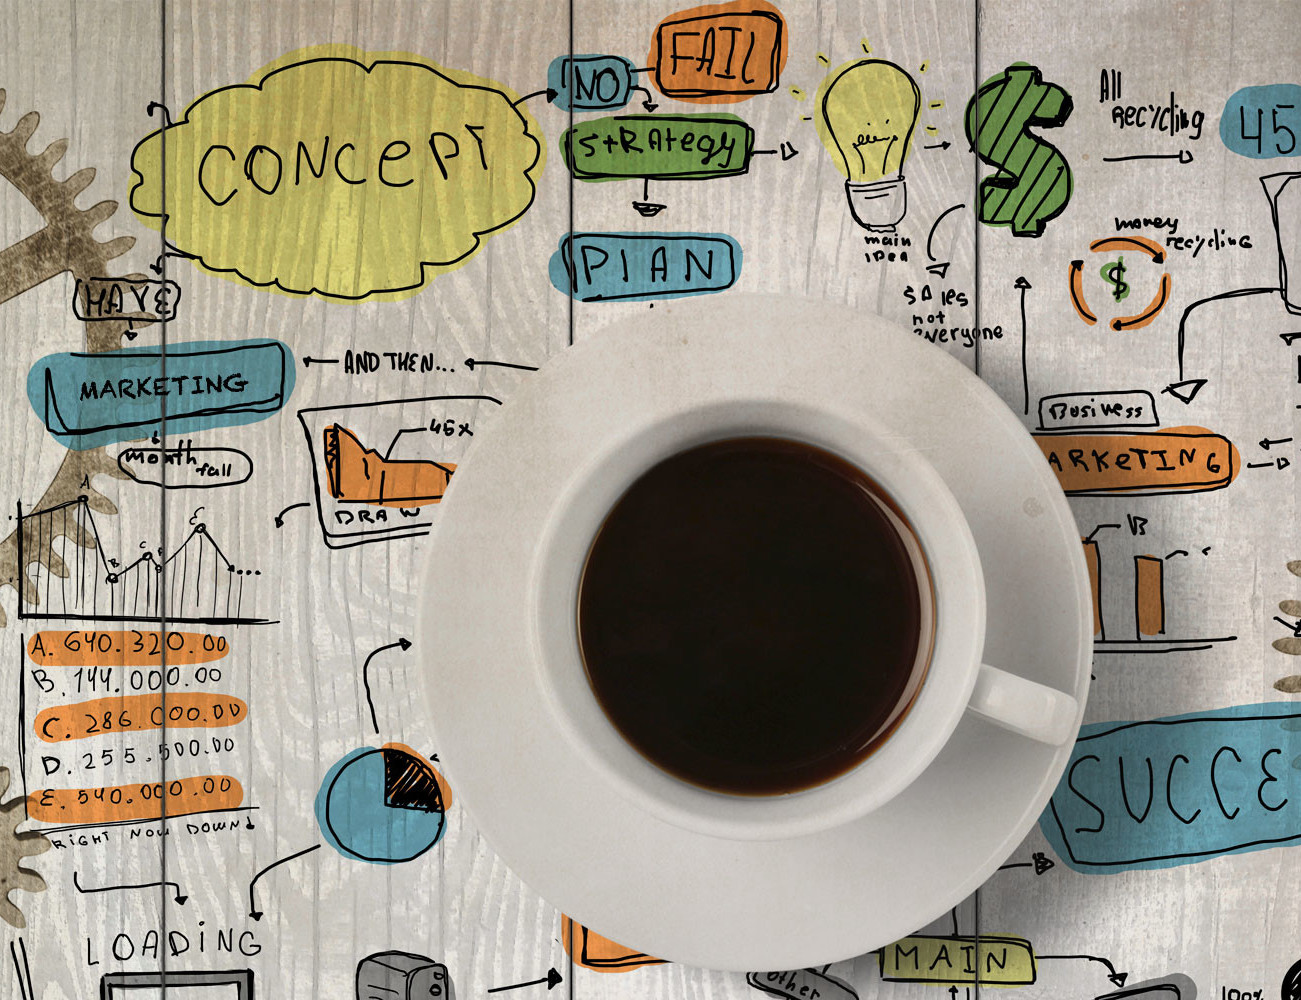 Visualization of marketing concepts and cup of coffee.